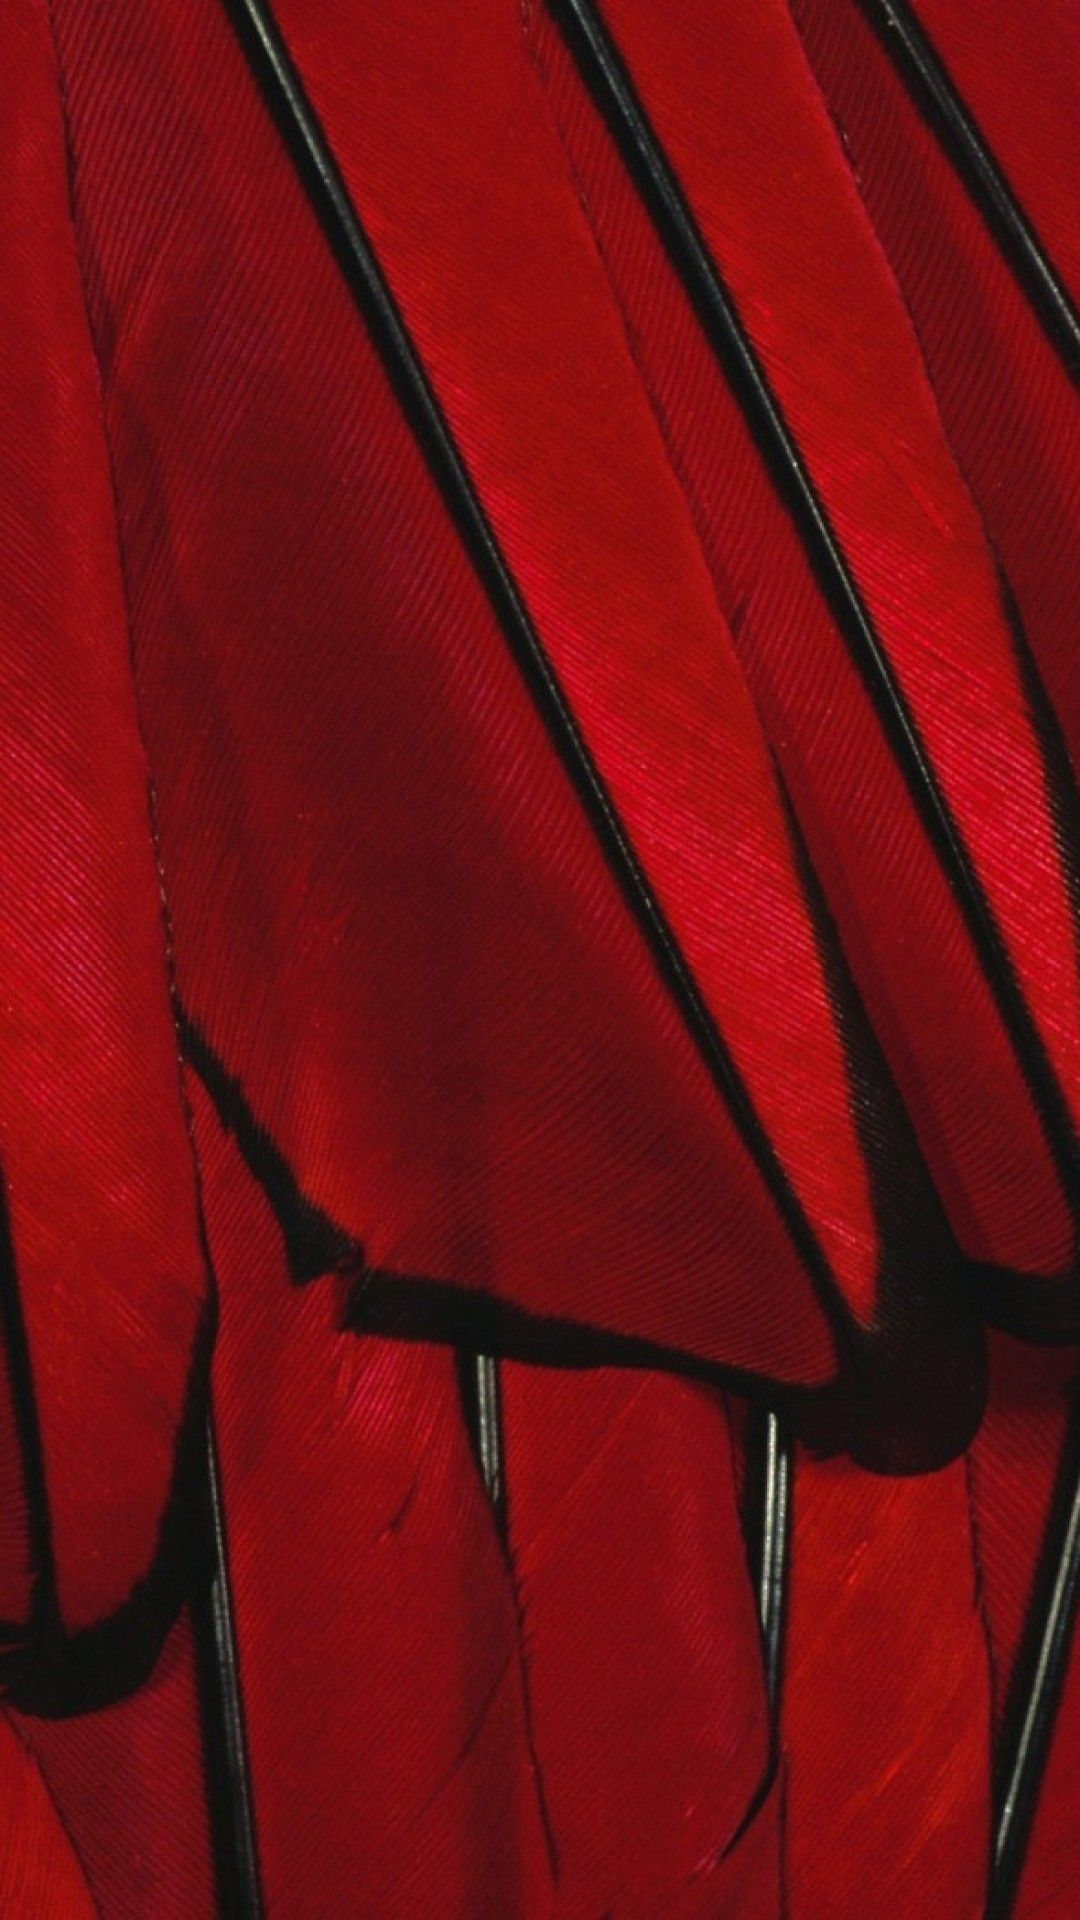 1080x1920 Black Red Paint Color Feather Iphone 6 Wallpaper Red